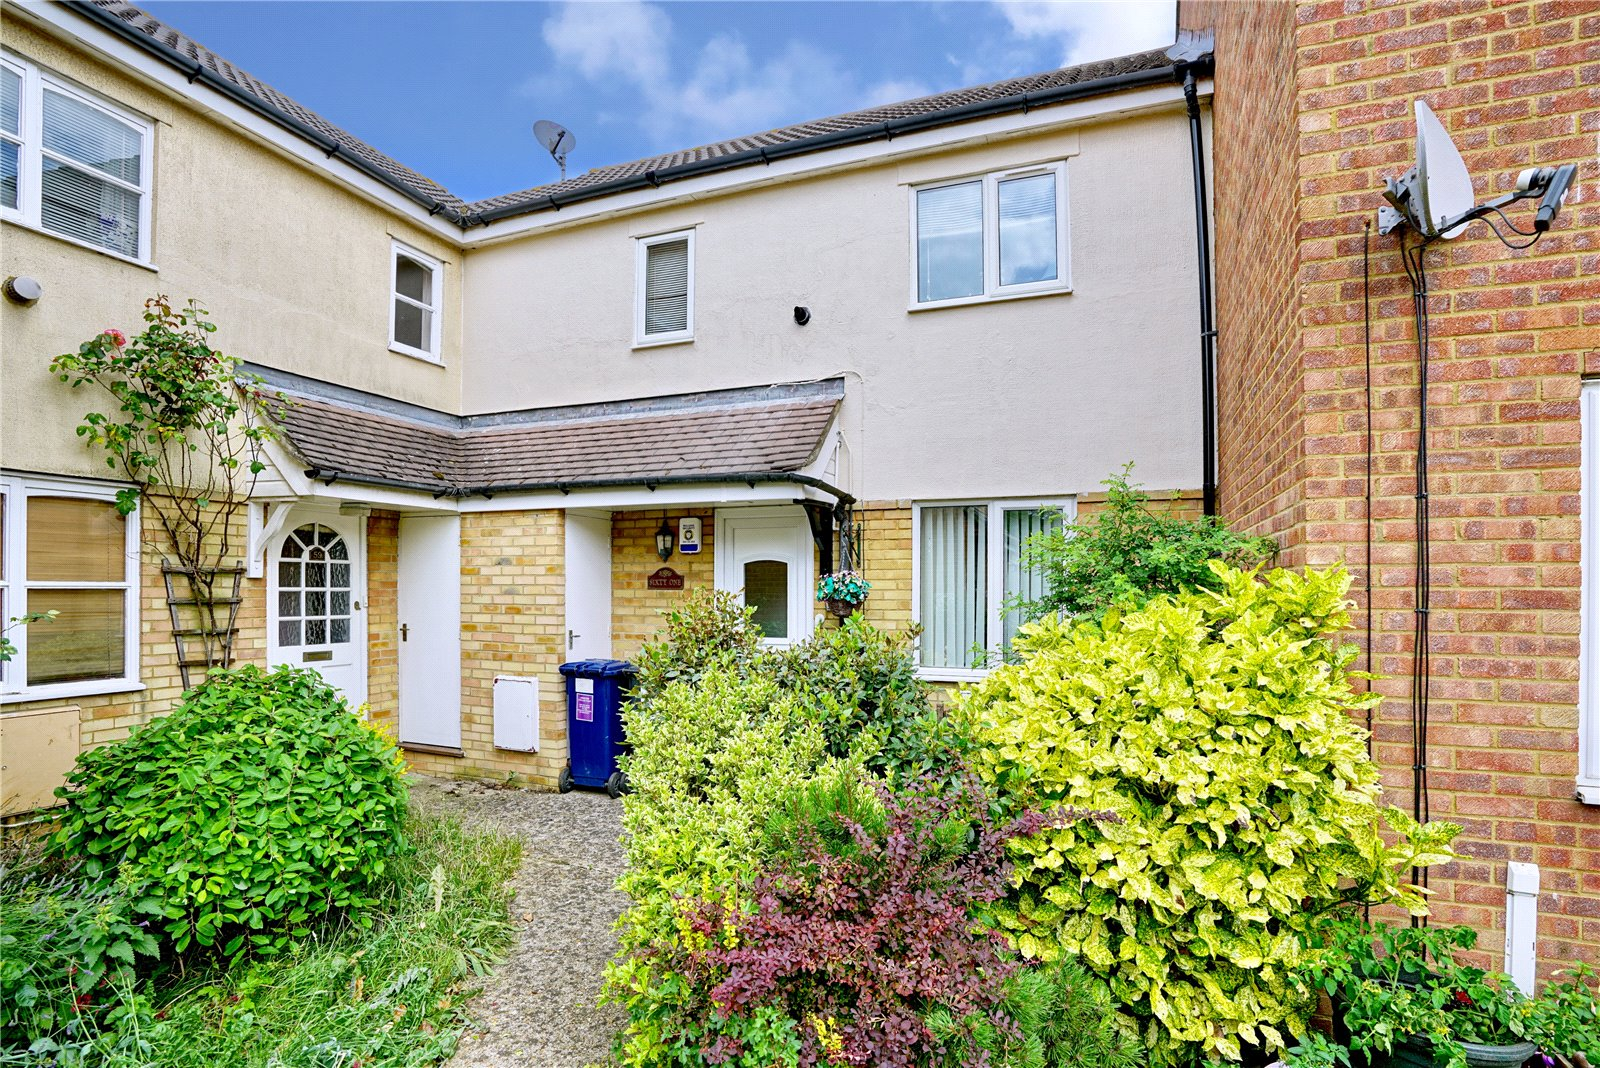 2 bed house for sale in Eaton Socon, PE19 8PZ  - Property Image 1